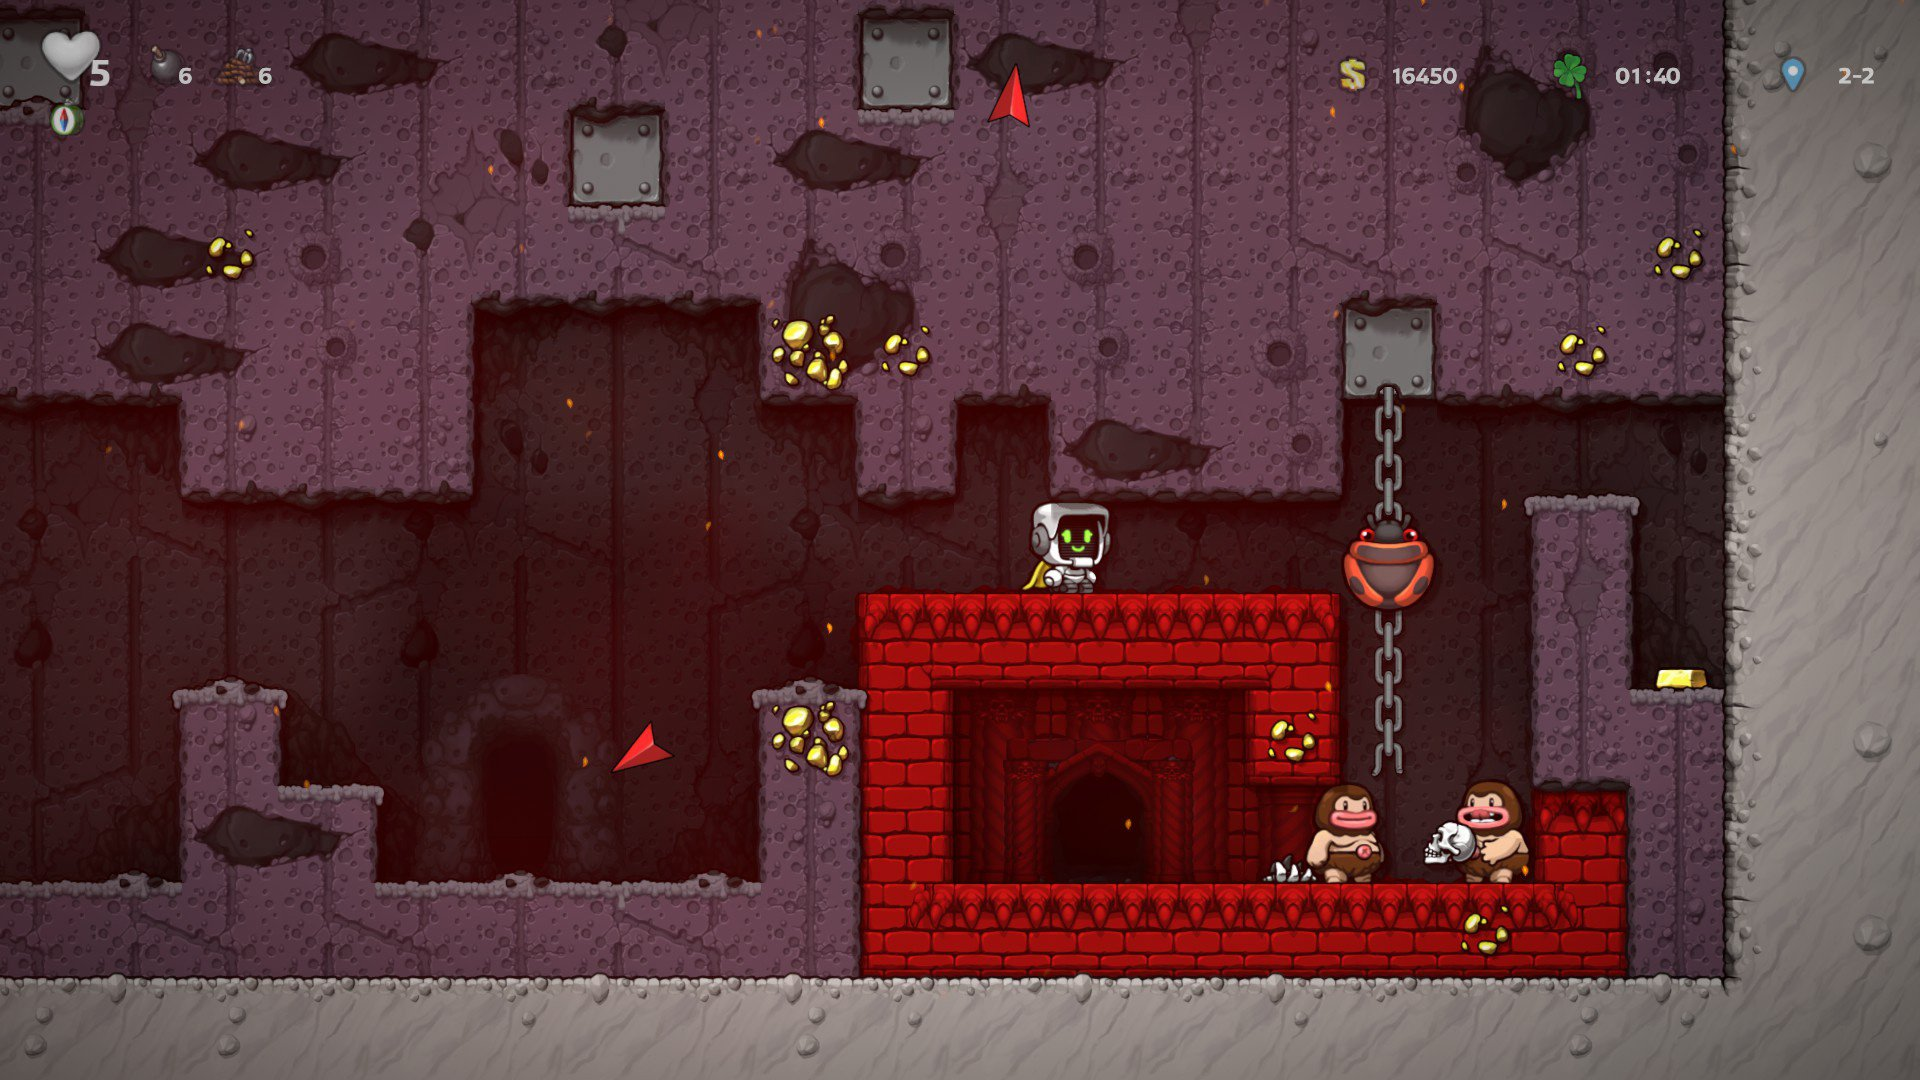 How to reach Vlad and get the crown in Spelunky 2